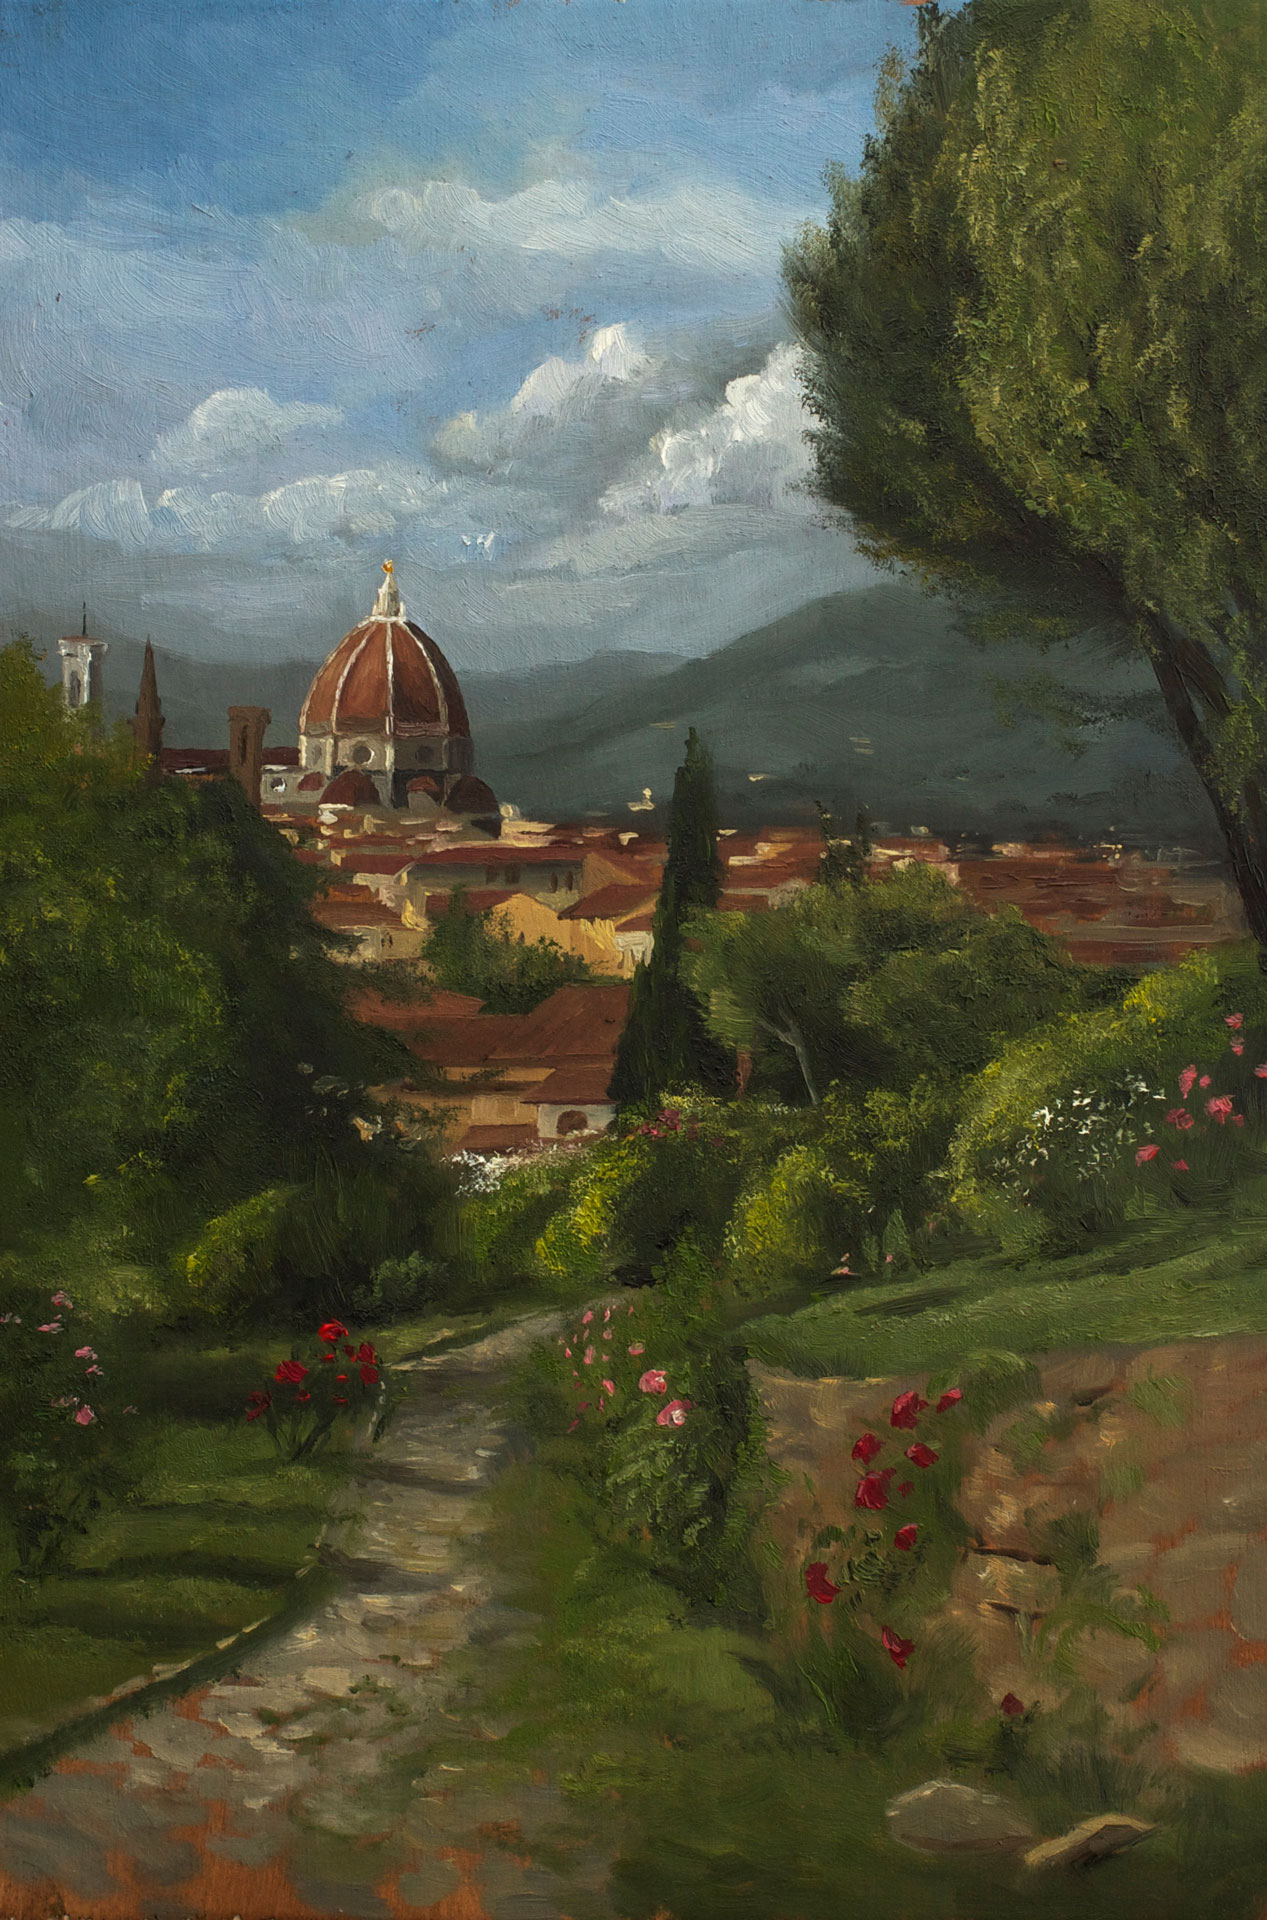 Sahra Becherer Plein air Giardino delle Rose Firenze 052015 - Sahra Becherer (Teacher)